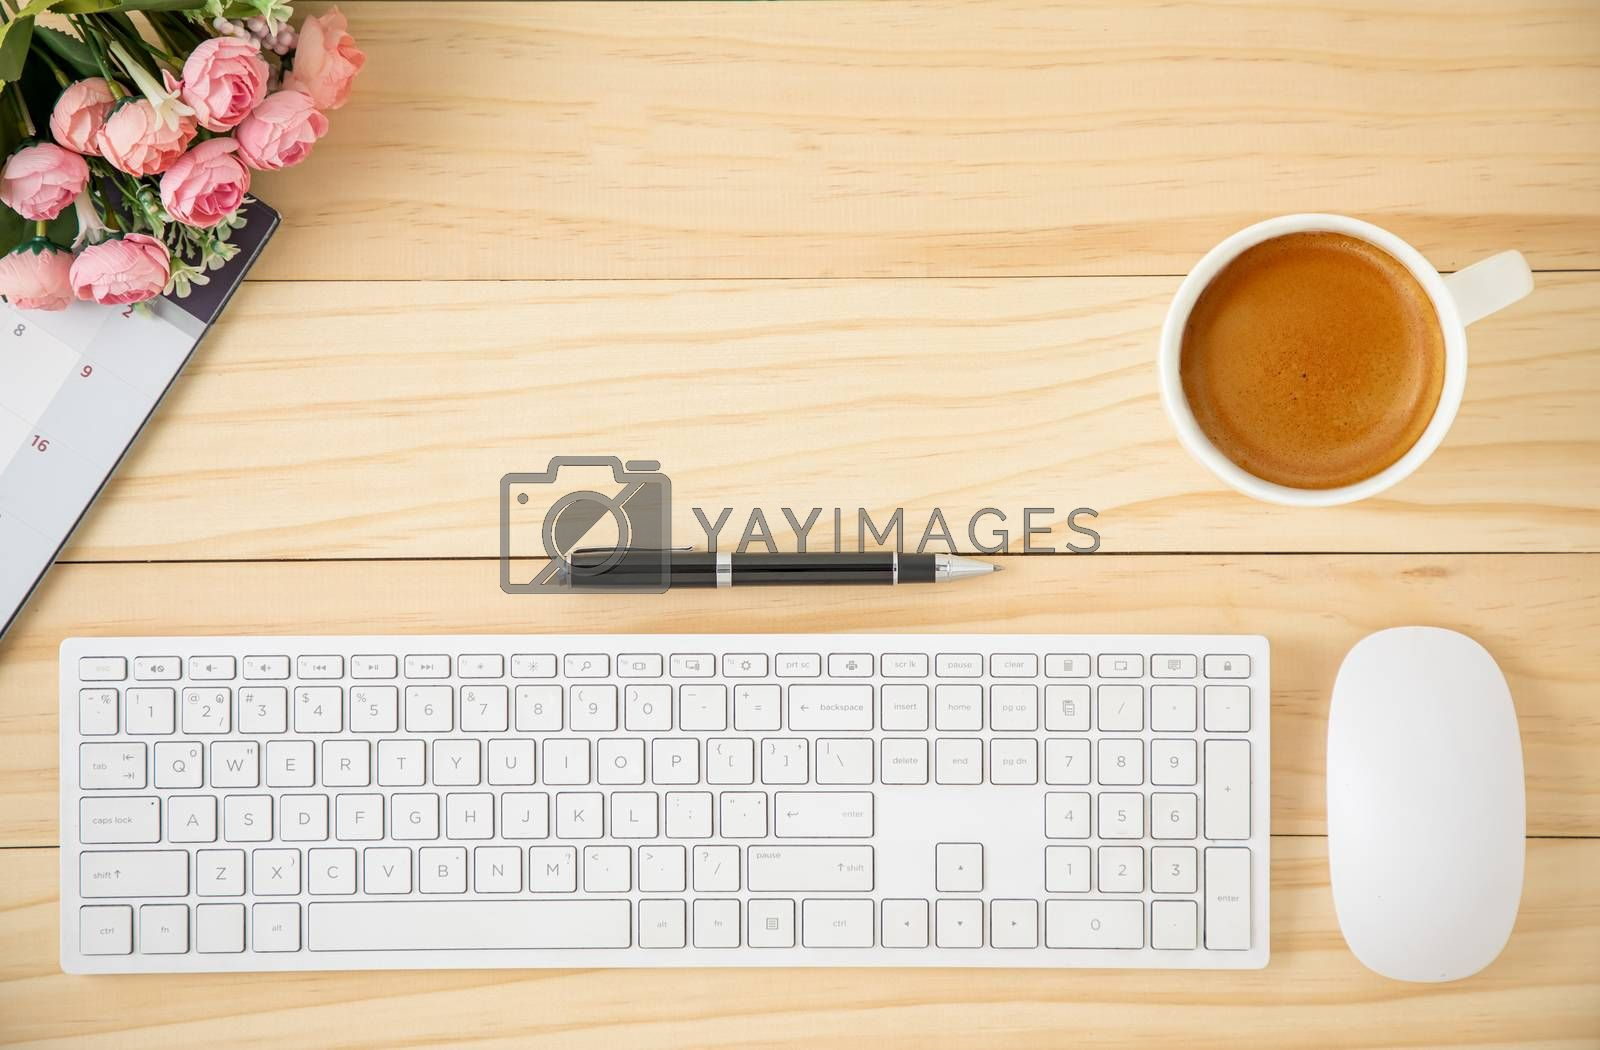 A minimal business workspace with white wireless computer mouse and keyboard with coffee in a white ceramic cup.